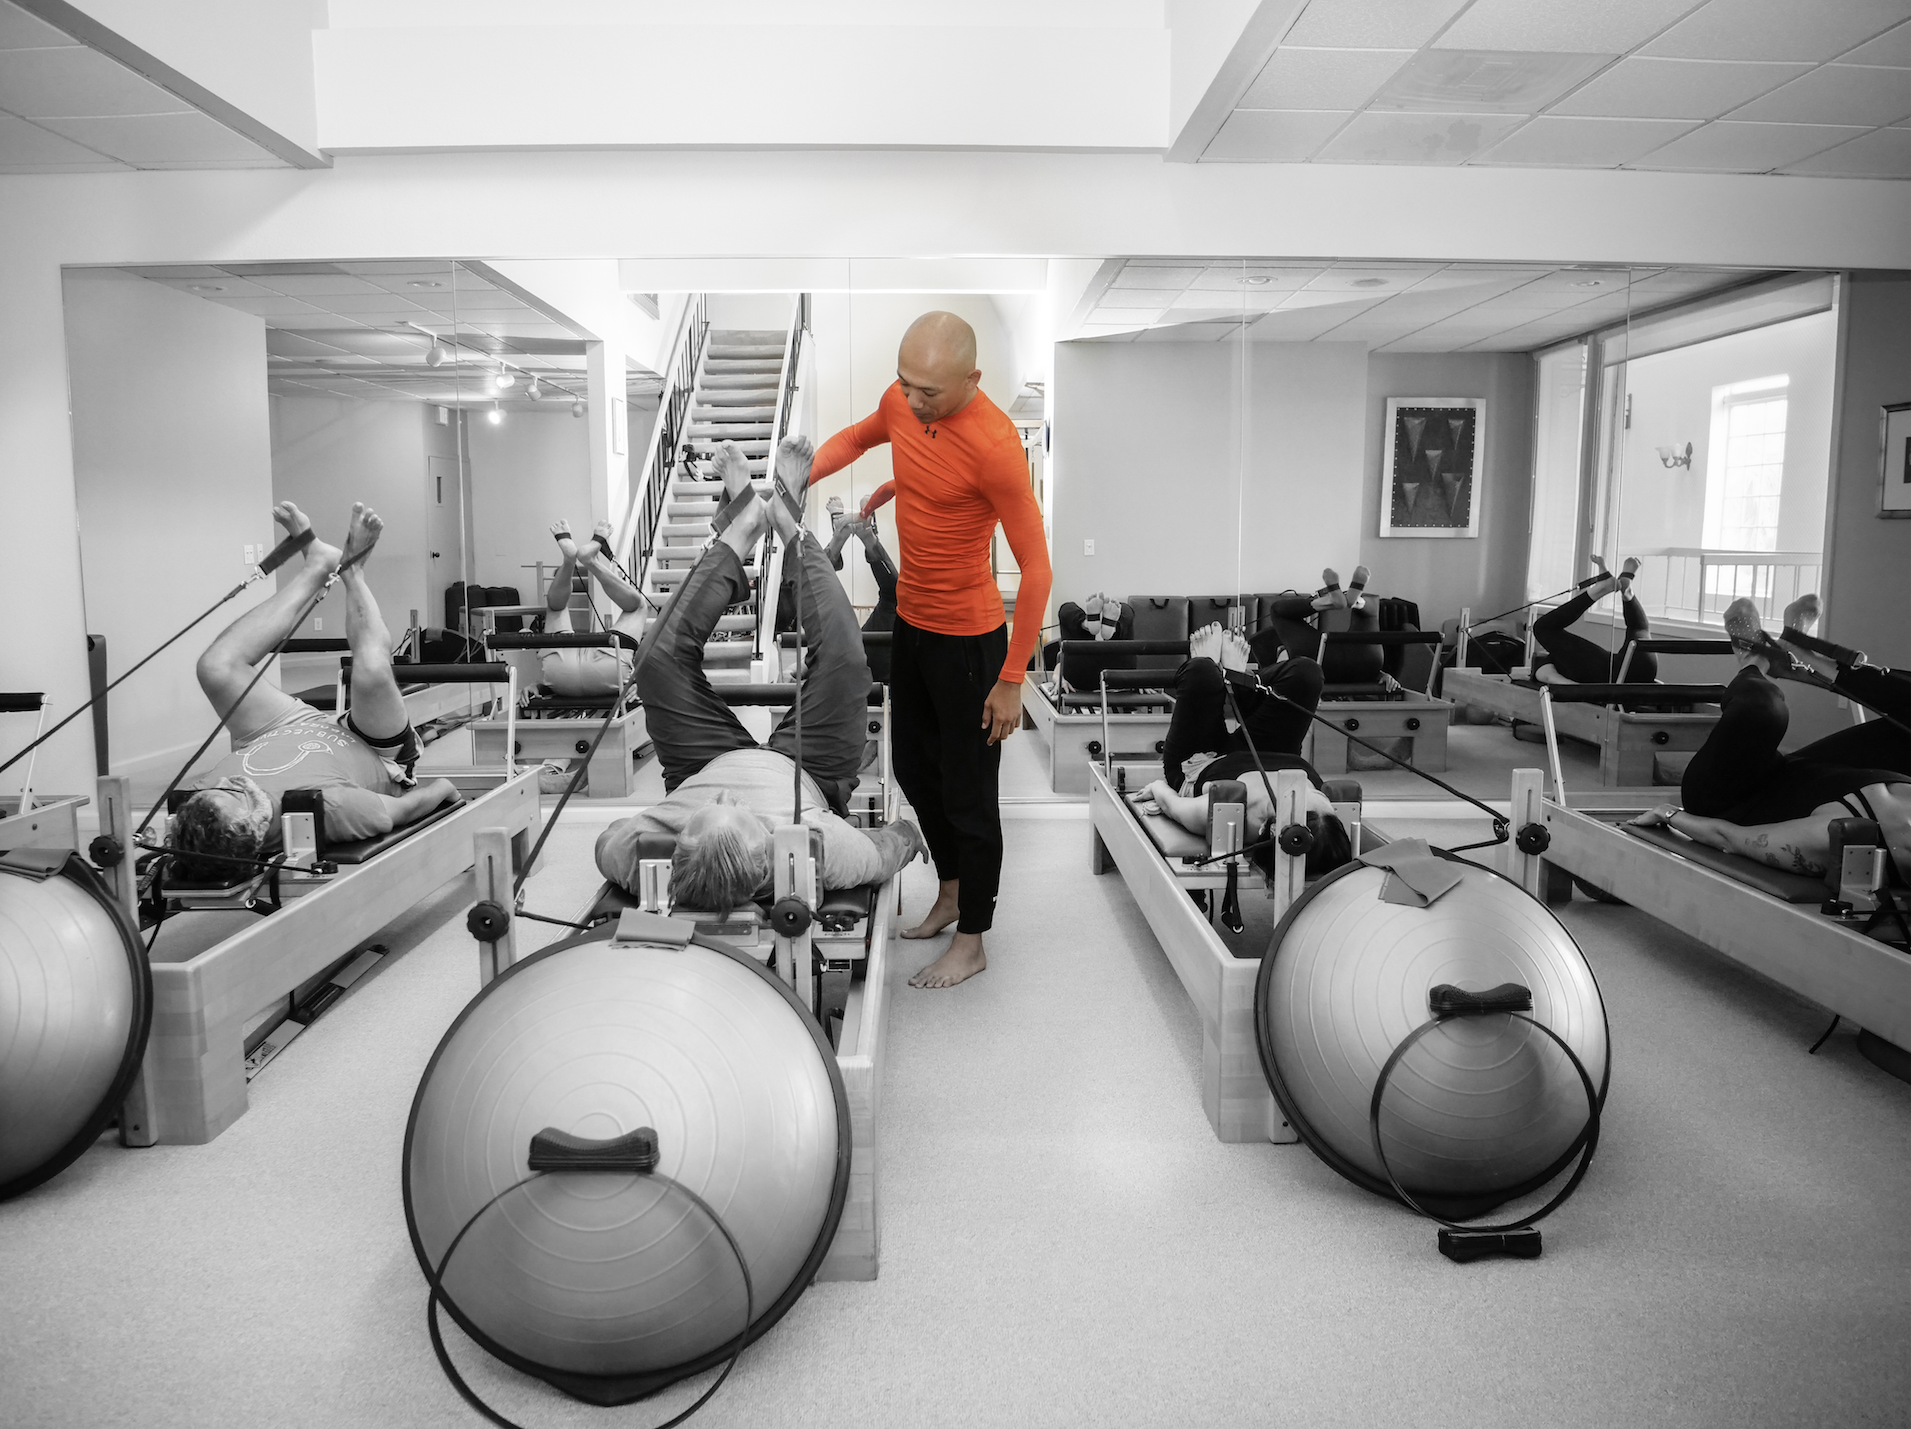 Pilates is more than a physical activity - it is a philosophy, a way to communicate with your physical self. -